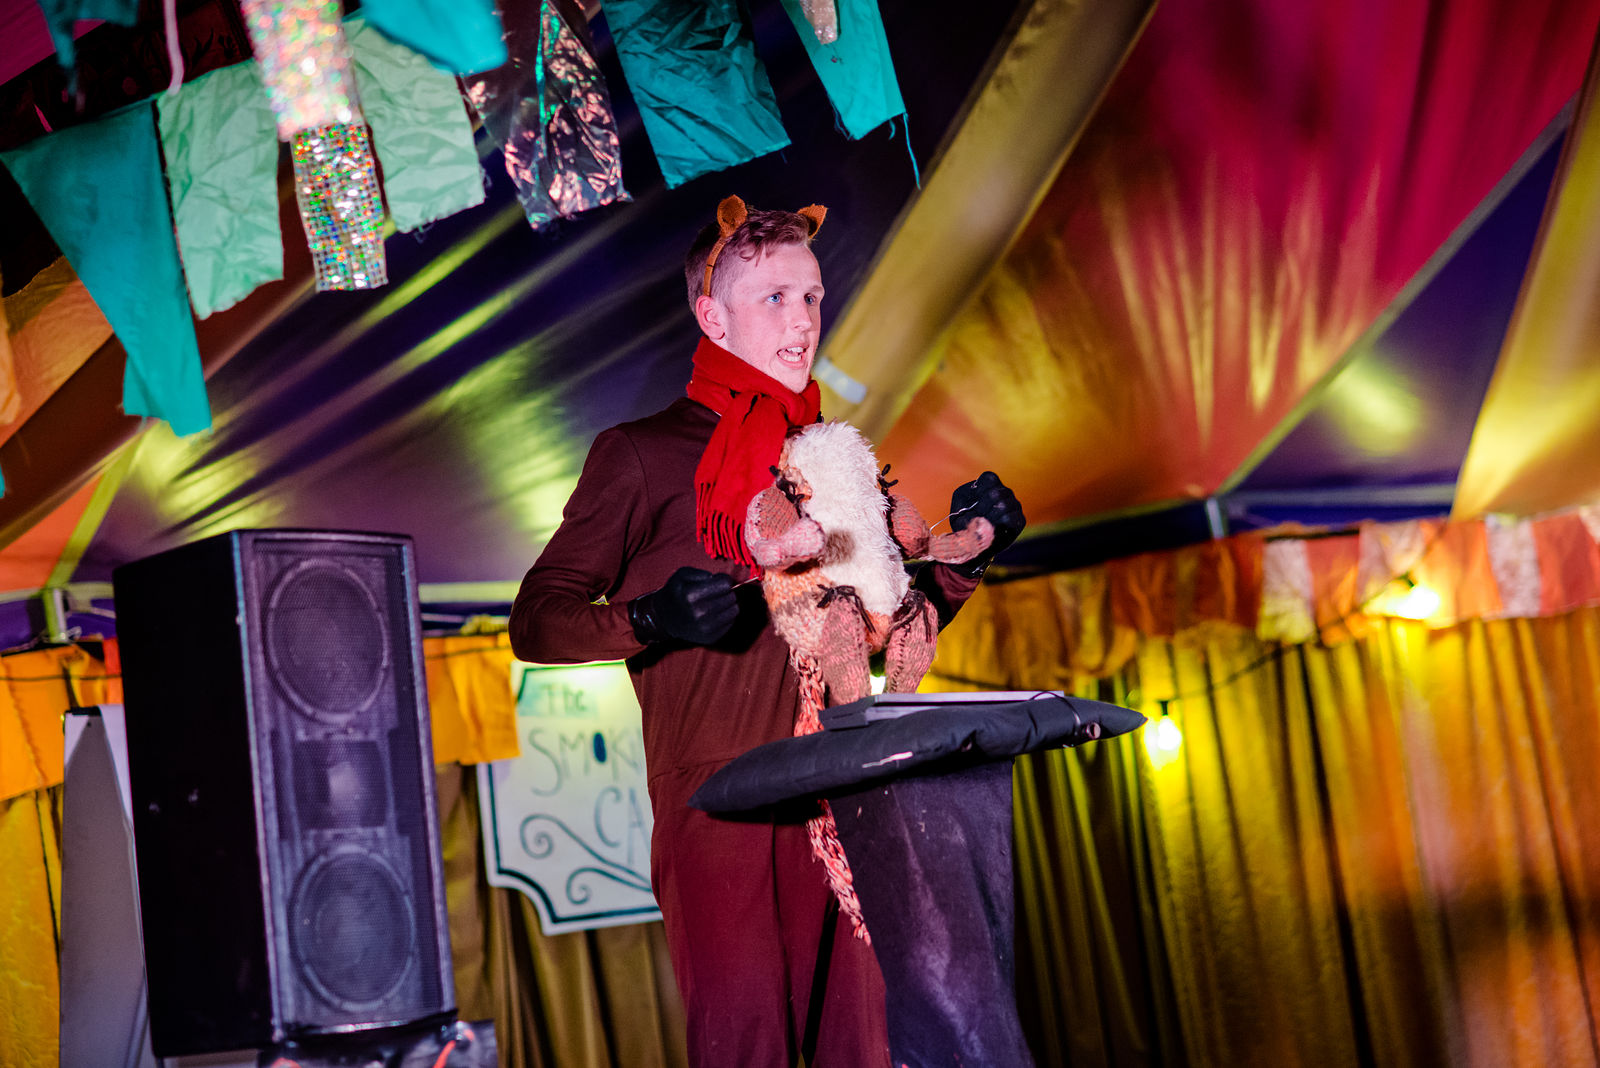 The Smoking Puppet Cabaret Puppetry Tent